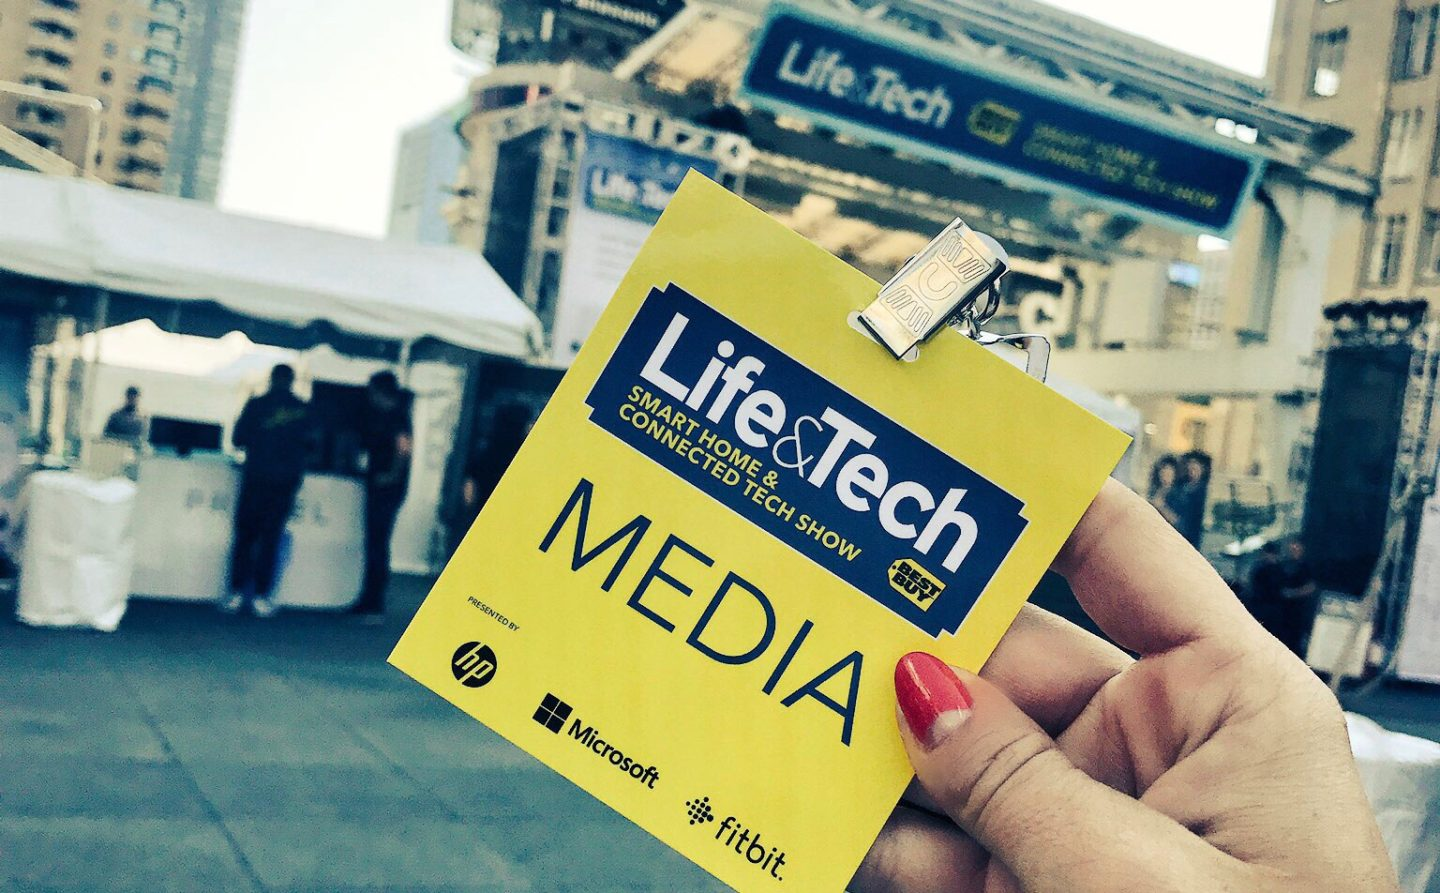 Best Buy Life and Tech Show 2017